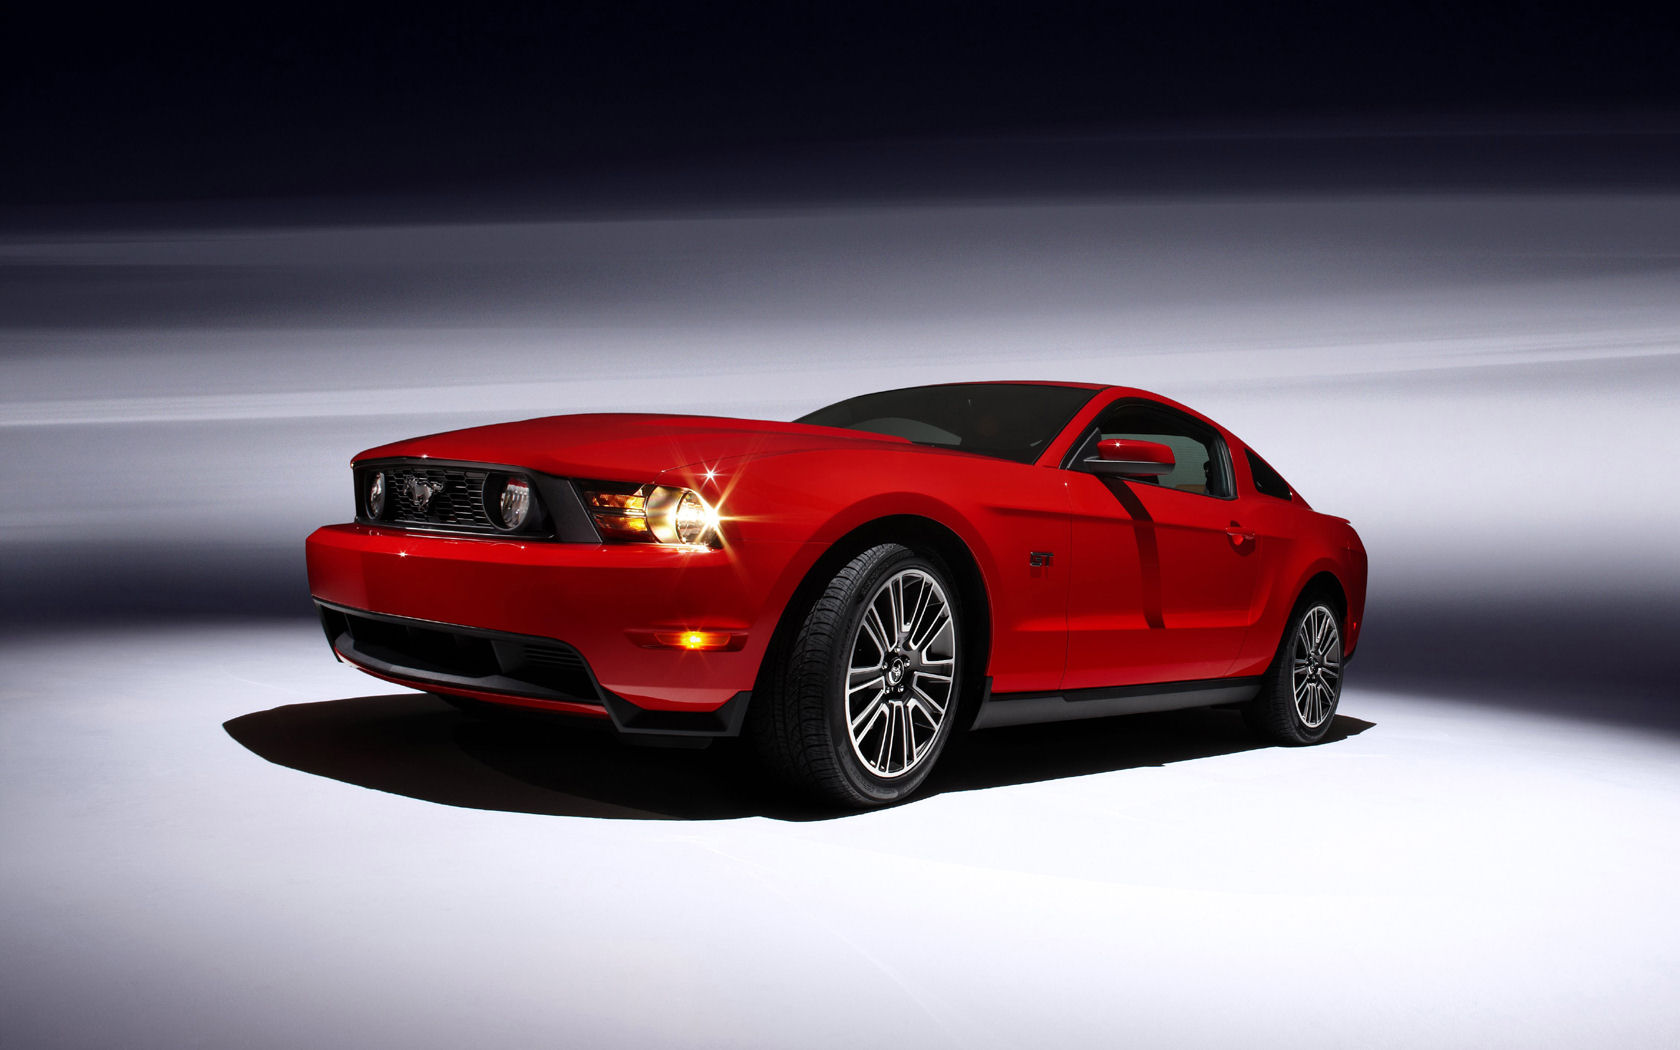 Ford Mustang Shelby Gt500 Convertible Free Widescreen